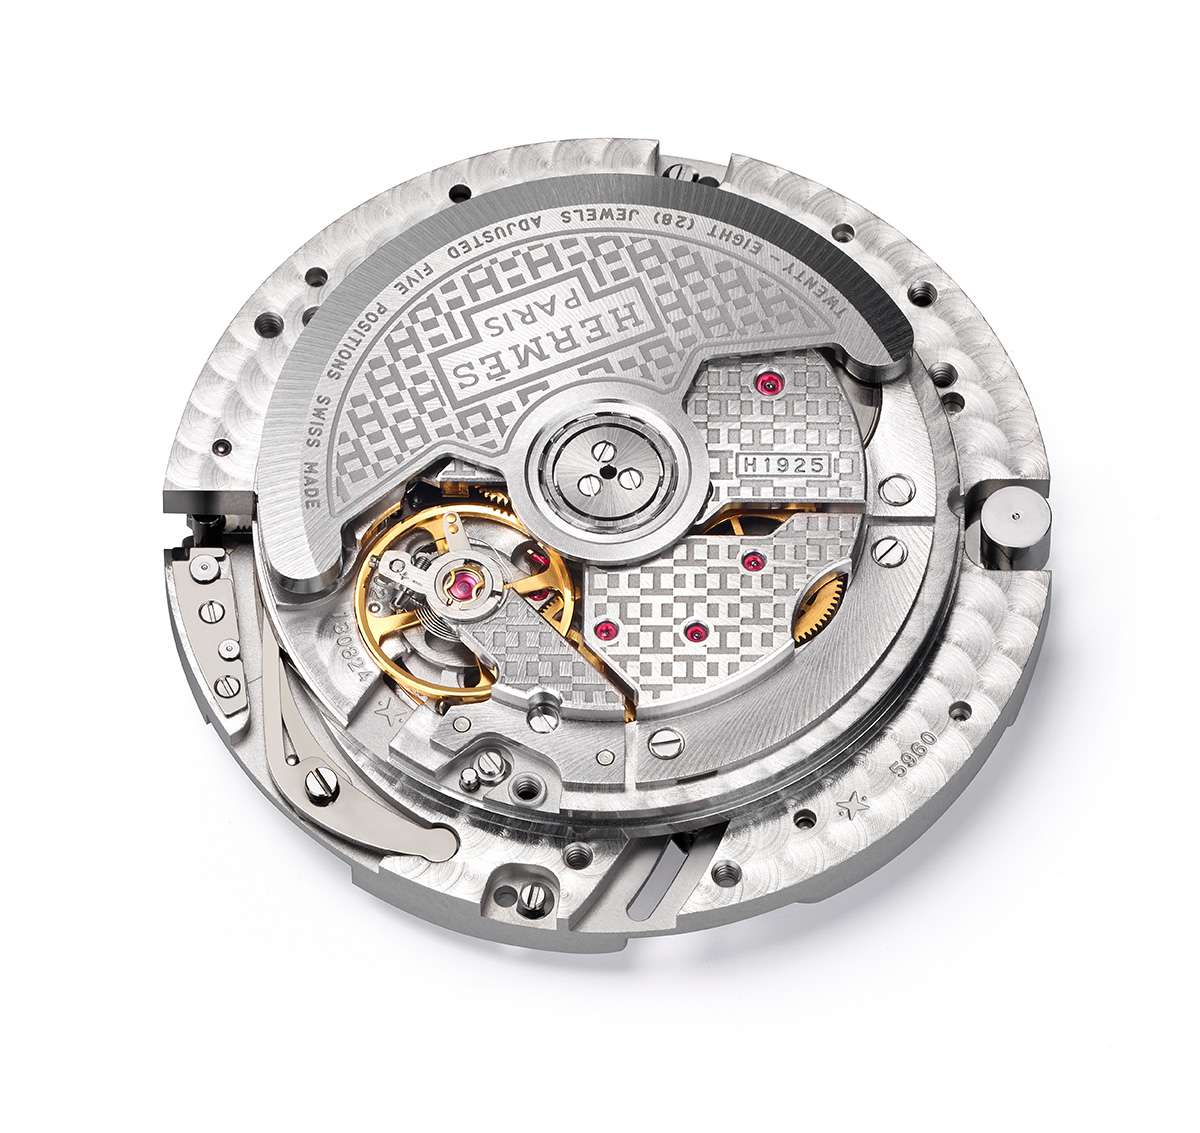 The H1925 movement, the oscillating weight with Hermès' own decorative pattern